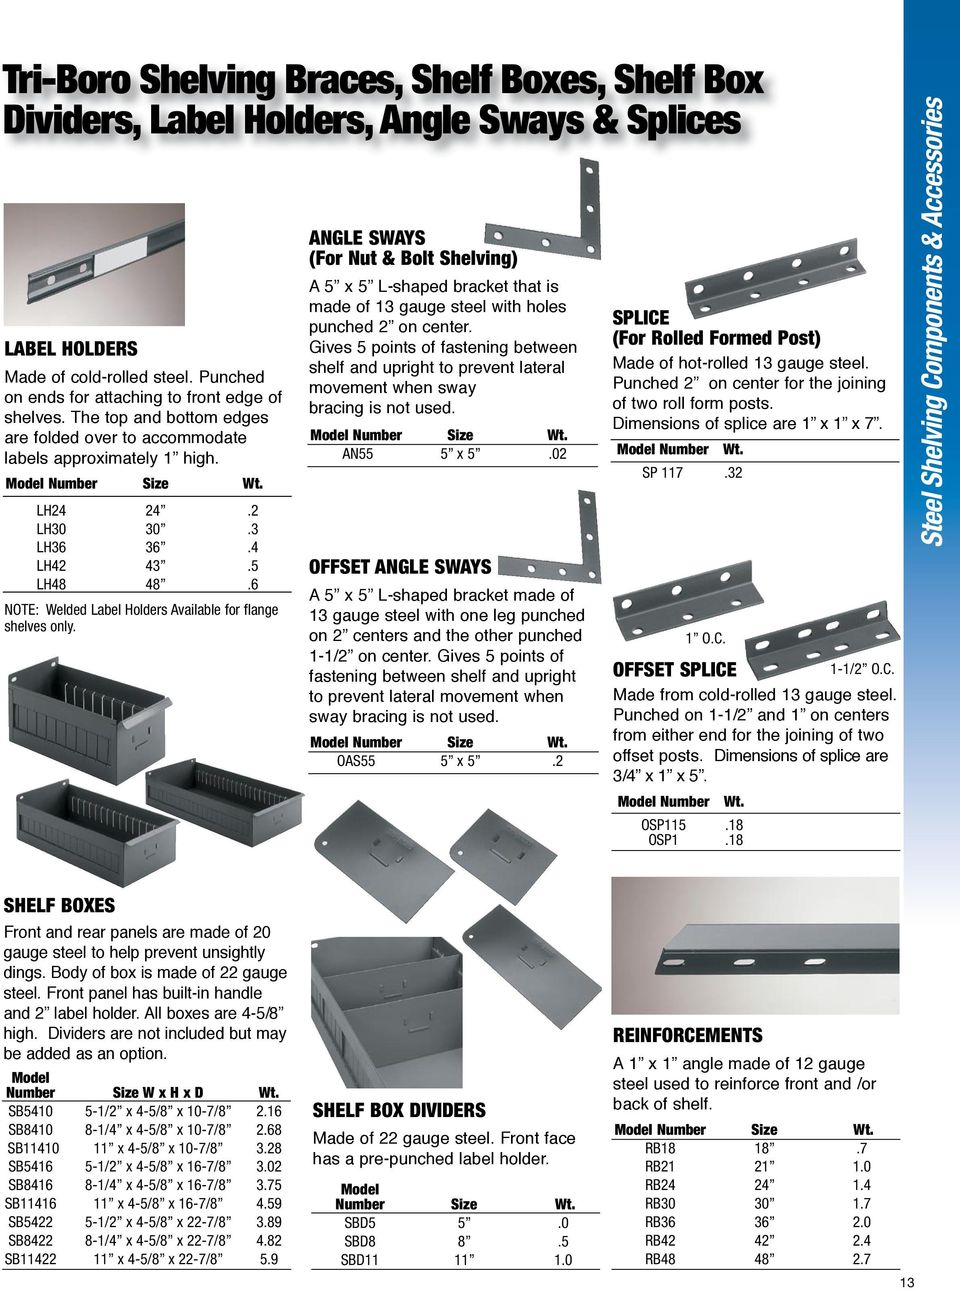 ANGLE SWAYS (For Nut & Bolt Shelving) A 5 x 5 L-shaped bracket that is made of 13 gauge steel with holes punched 2 on center.